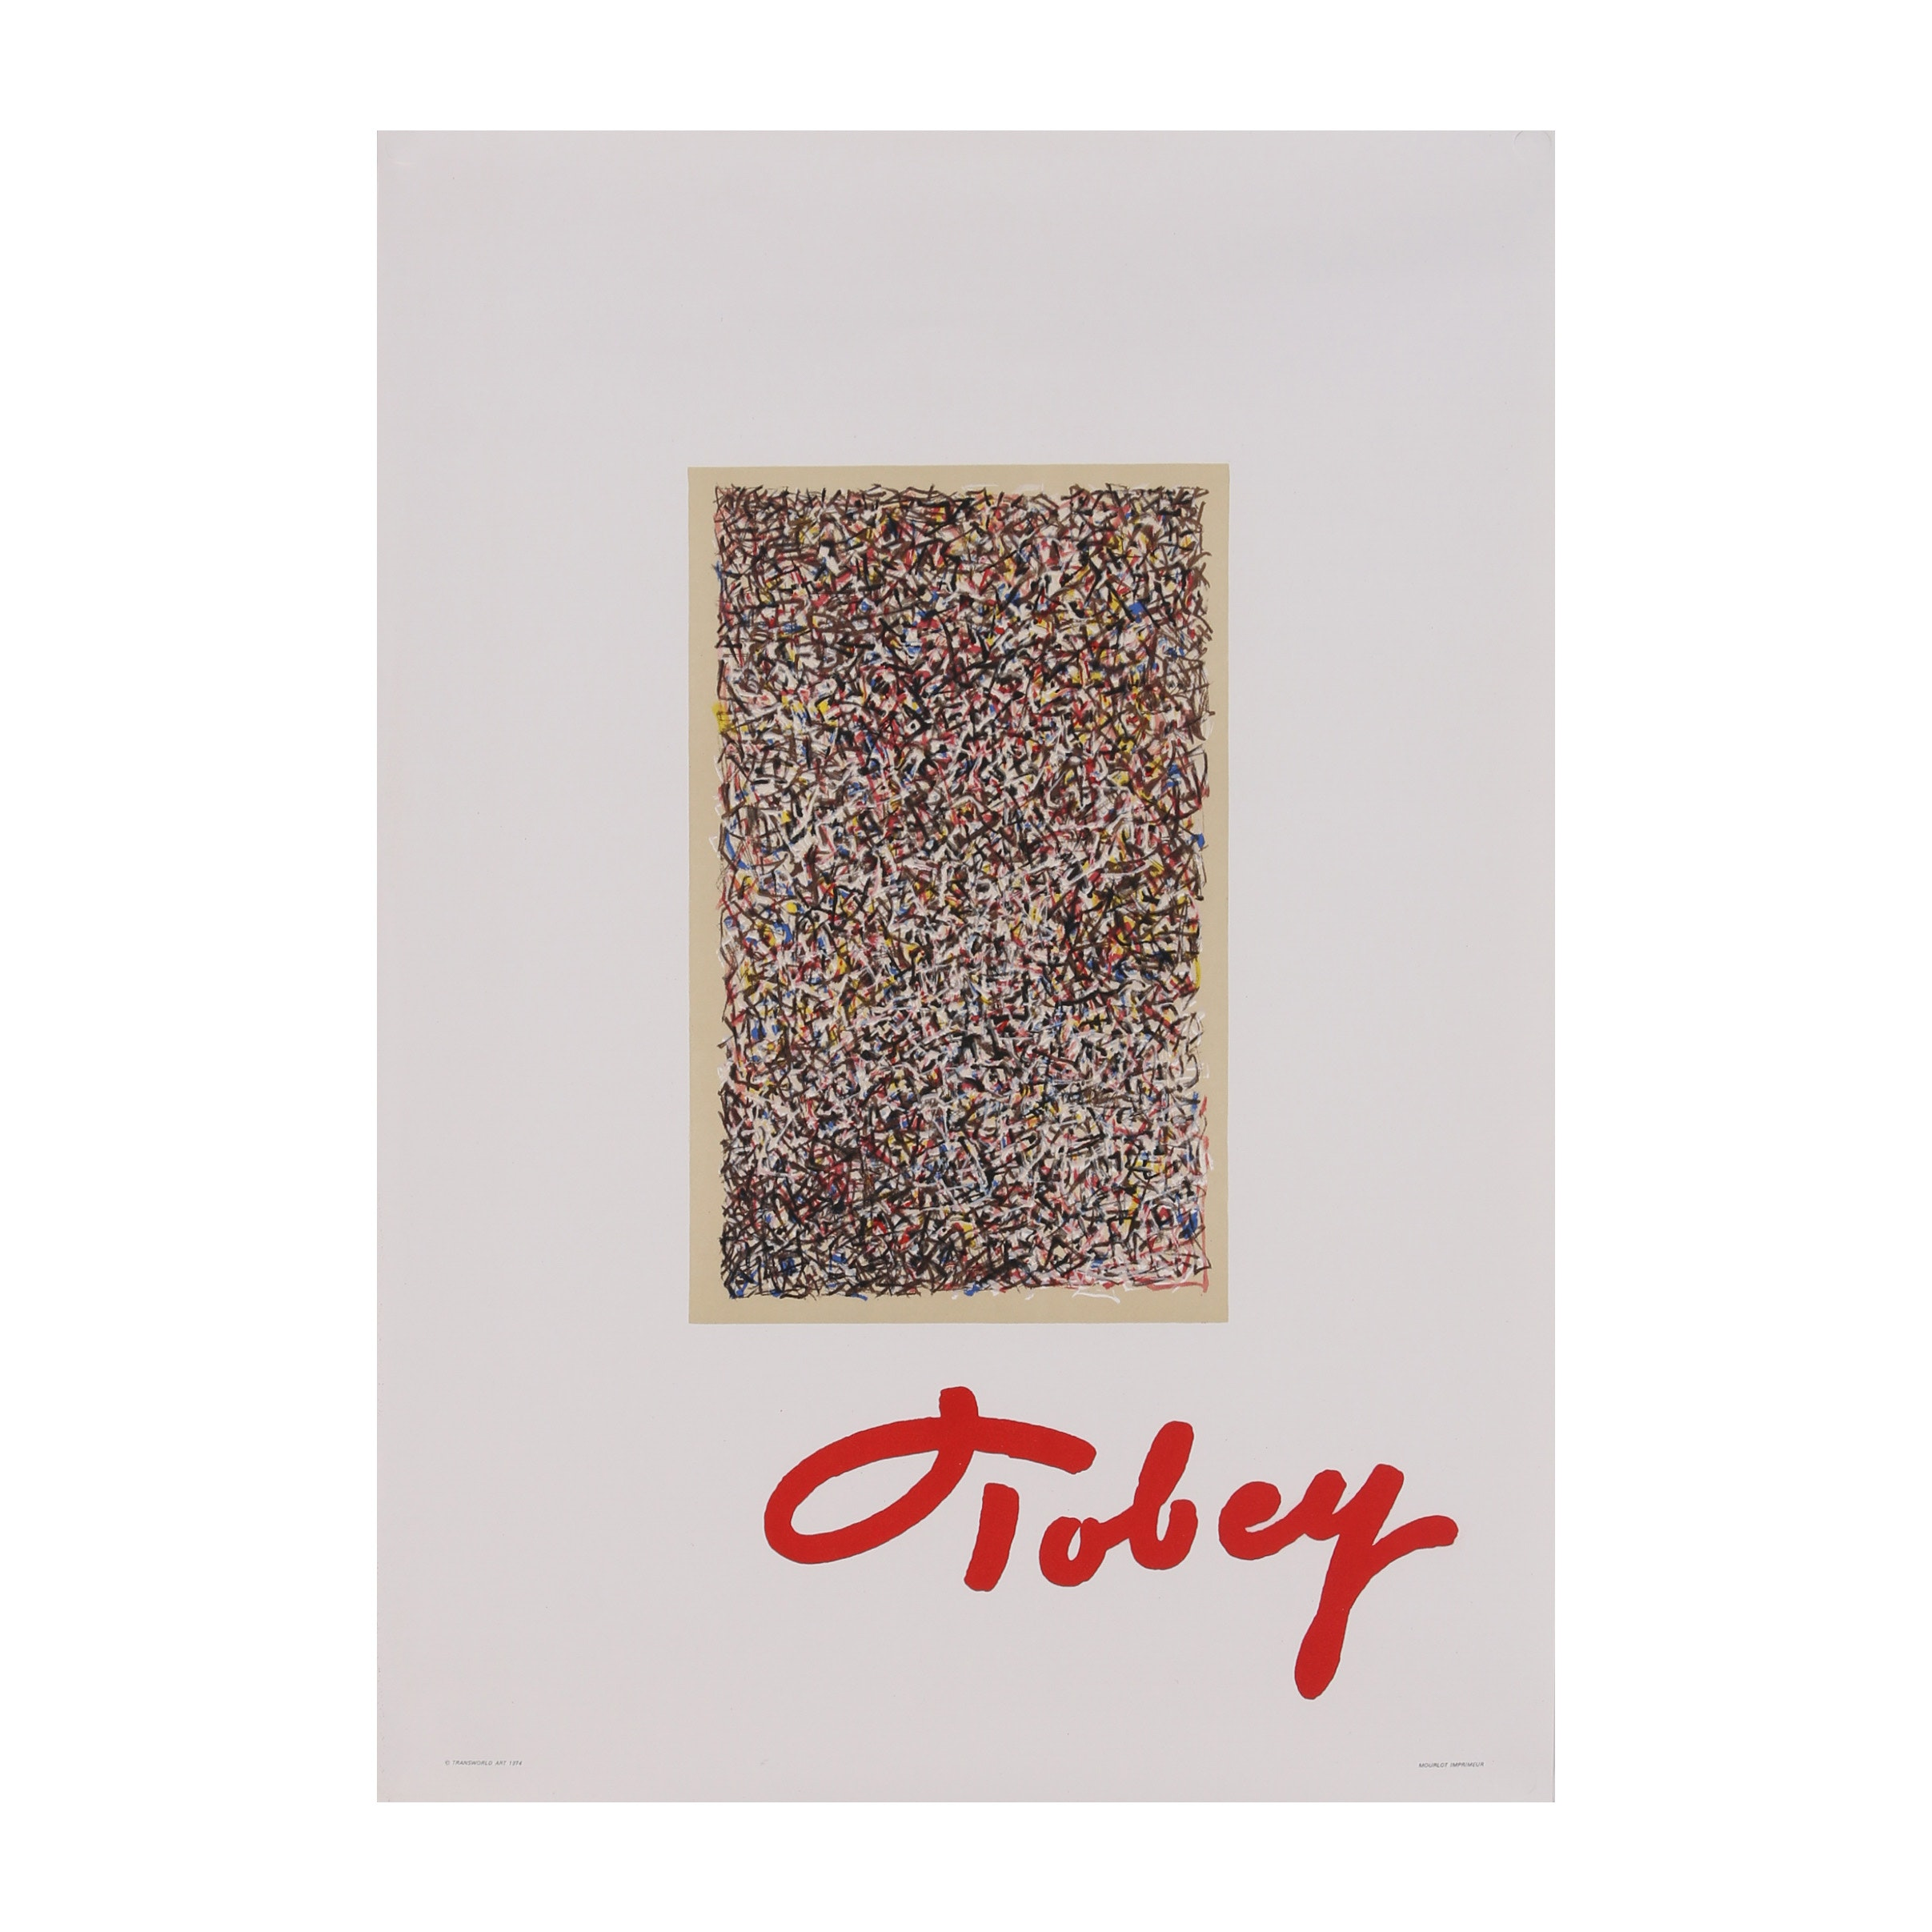 Color Lithograph Exhibition Poster for Mark Tobey